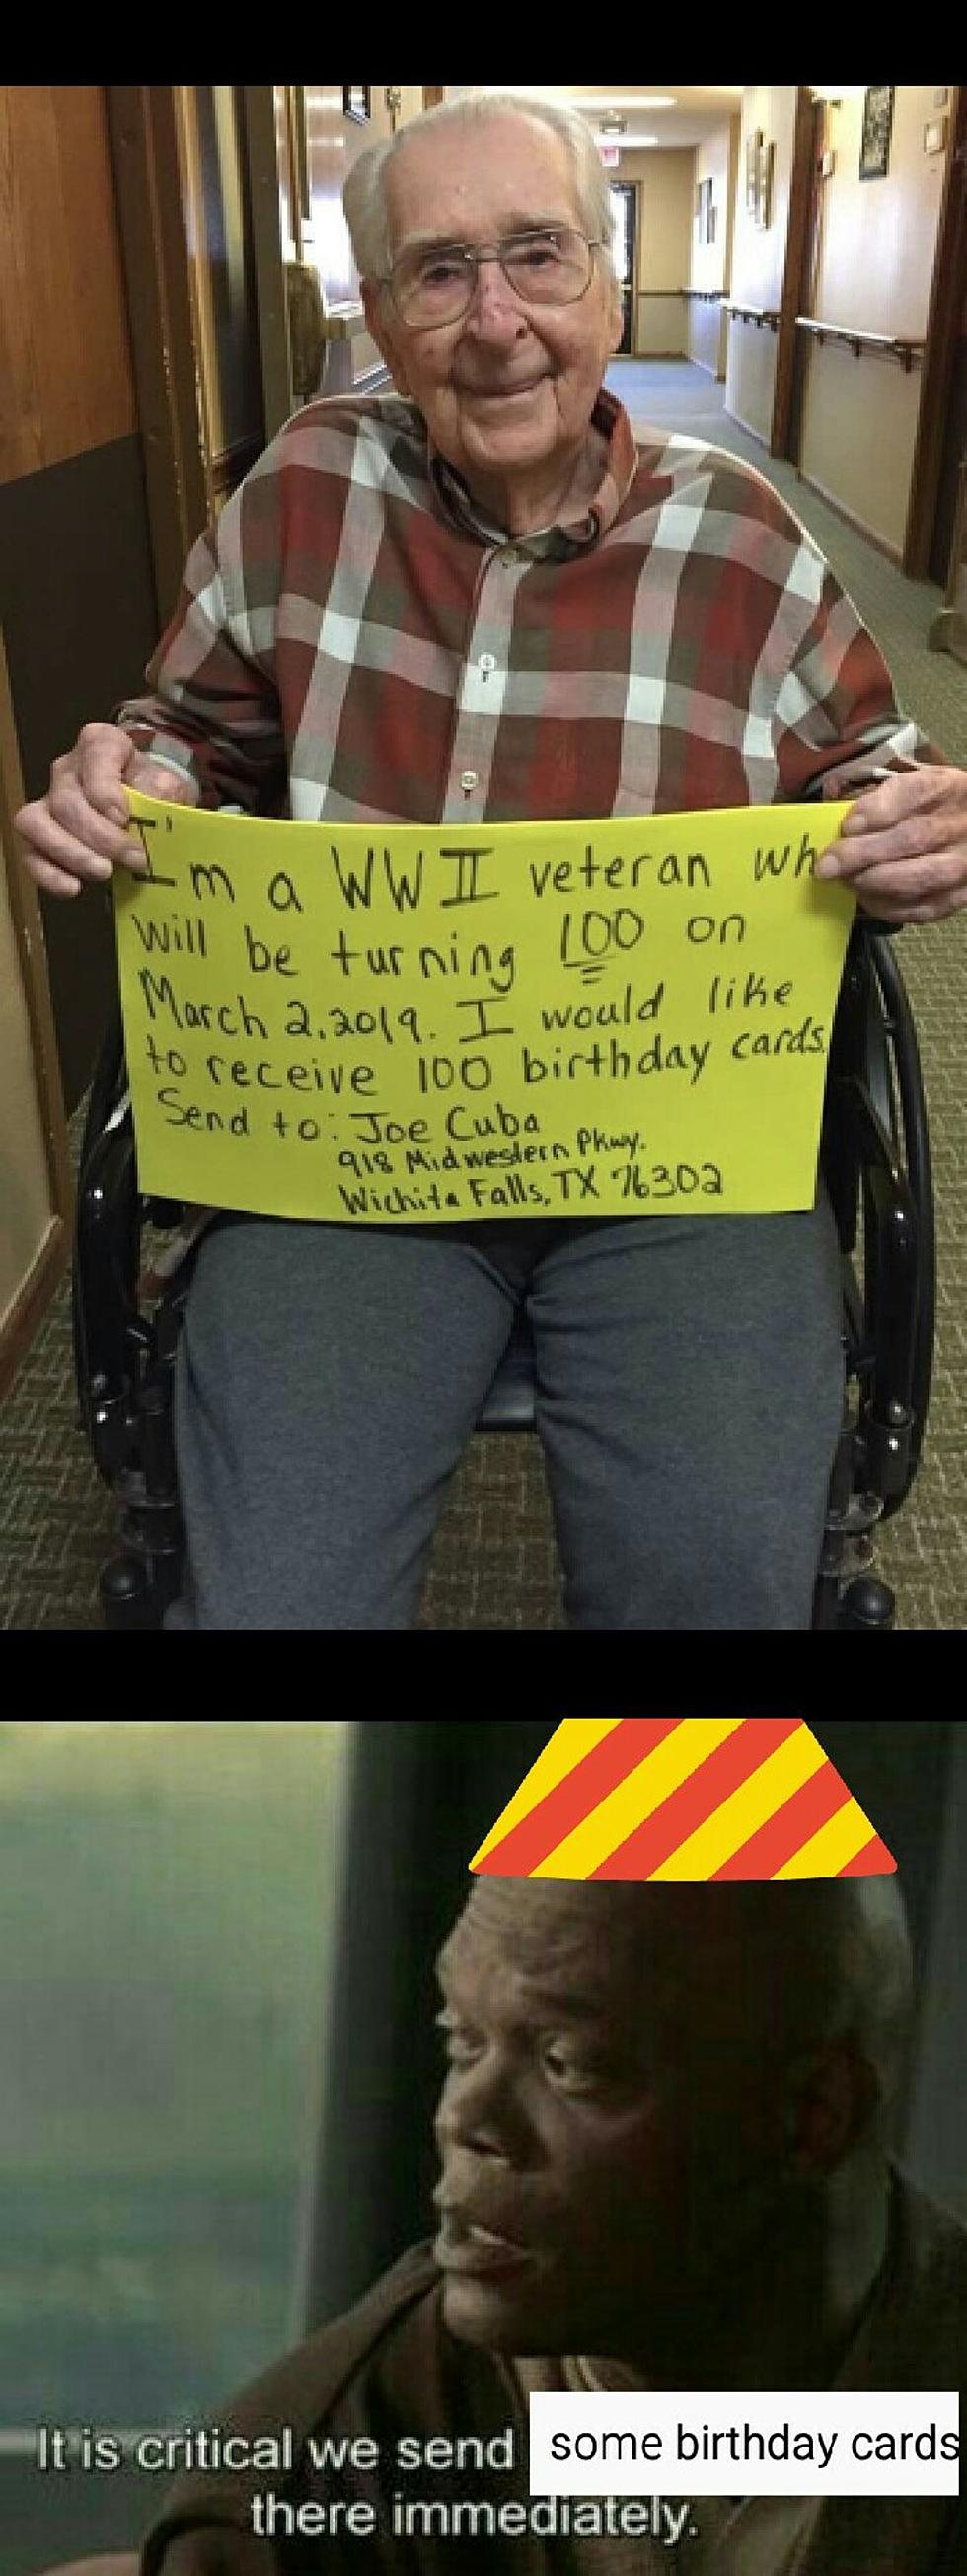 Wichita Falls WW2 Vet Wanting Birthday Cards For His 100th